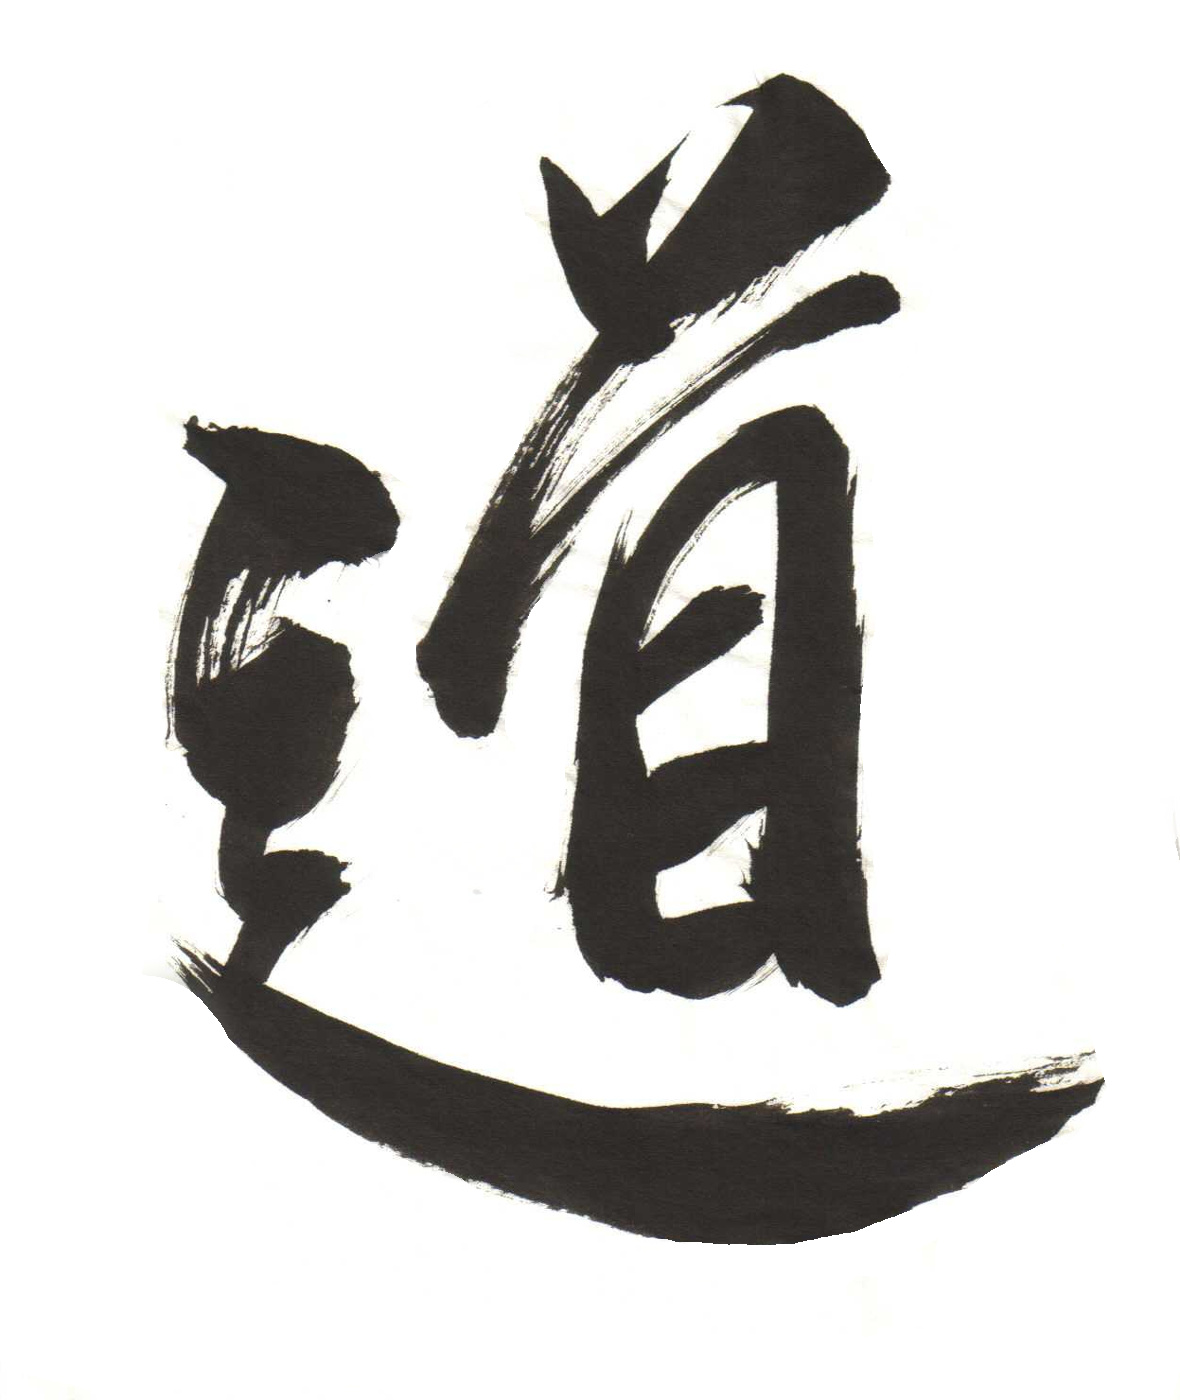 Tao calligraphy by Kerrie Redgate